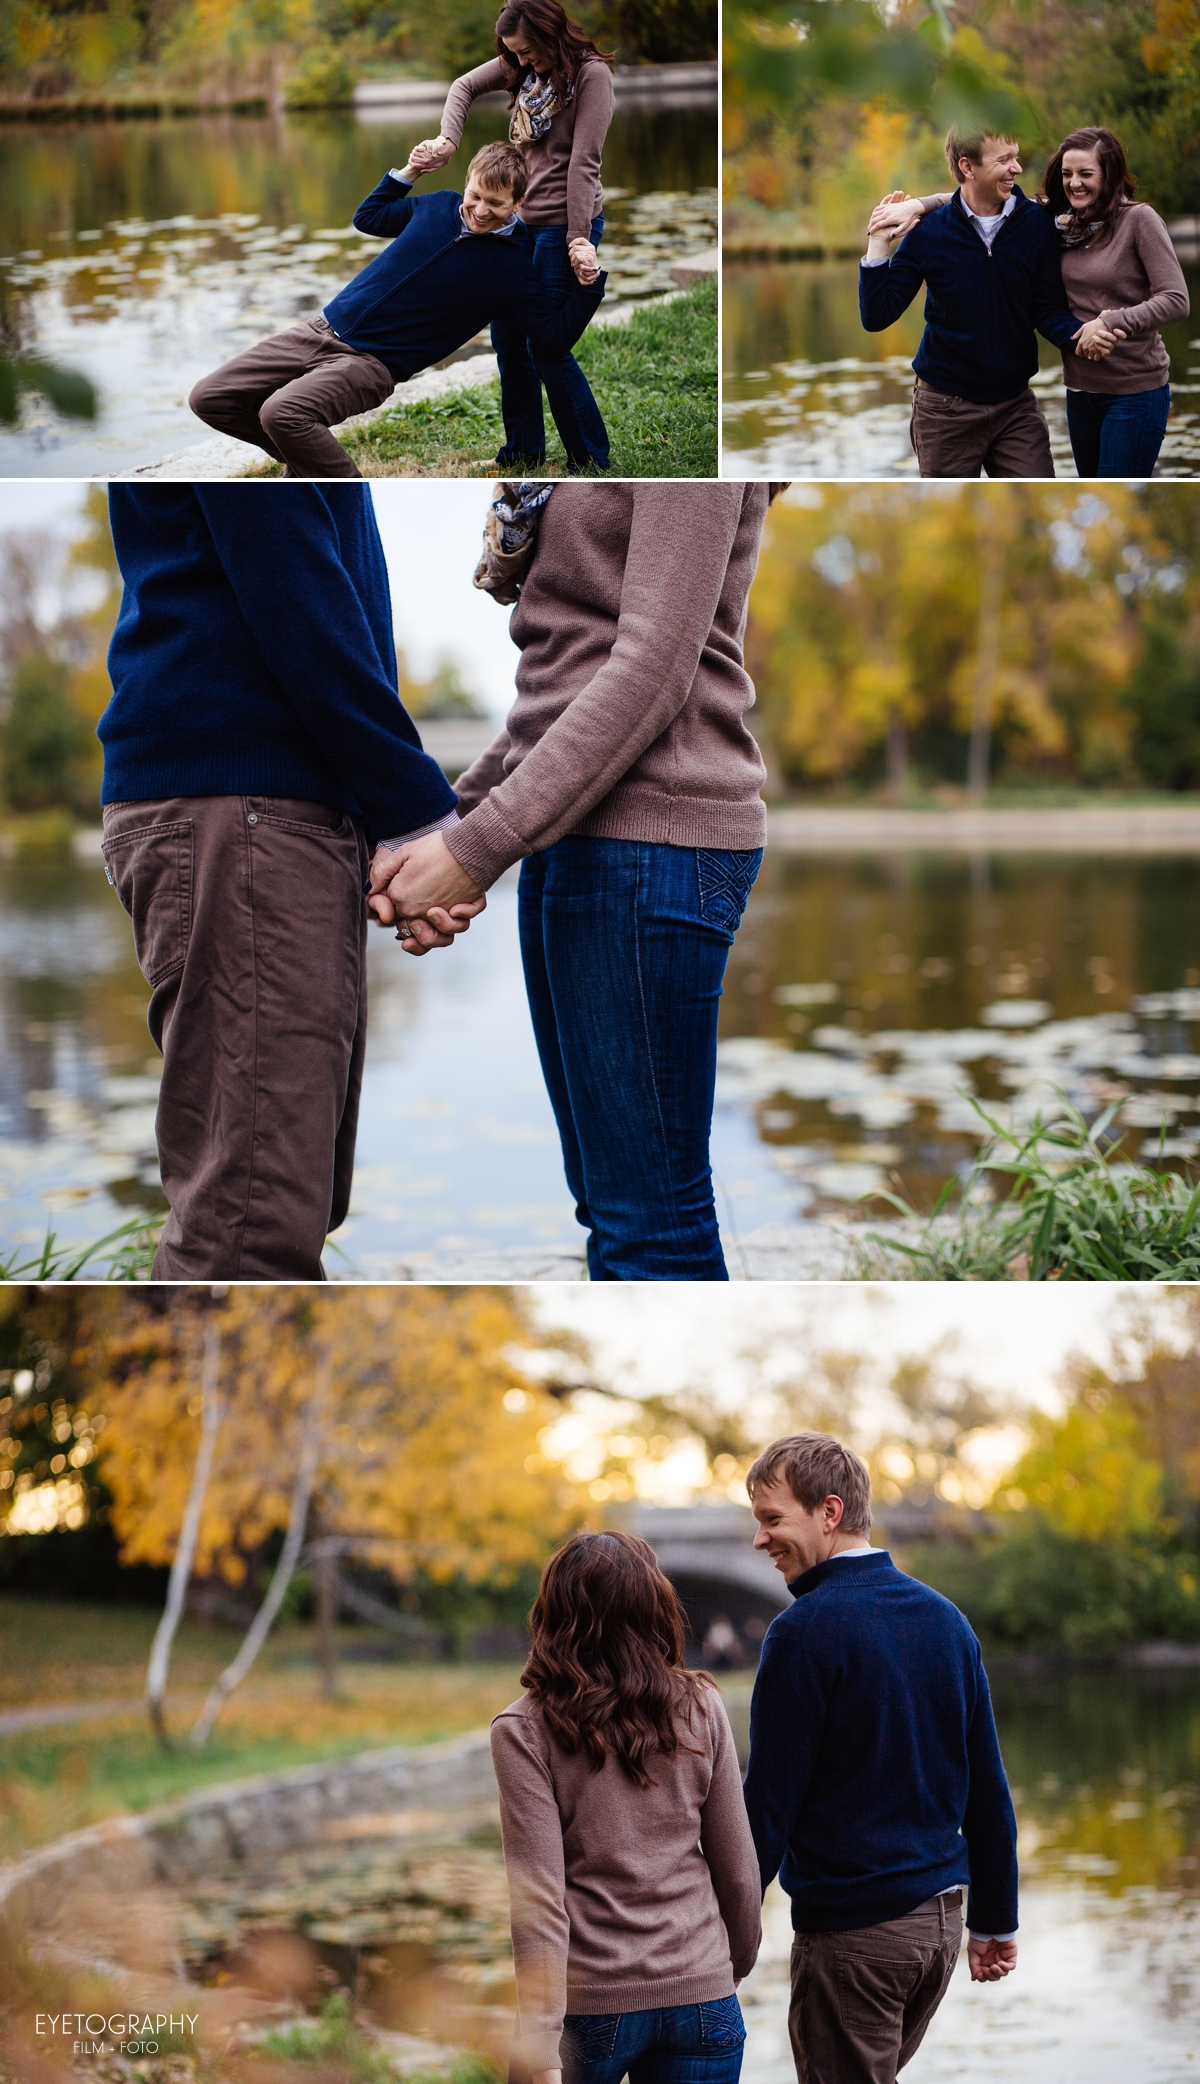 Minneapolis Fall Engagement Photography | Jaimie + Dan | Eyetography FIlm + Foto 5